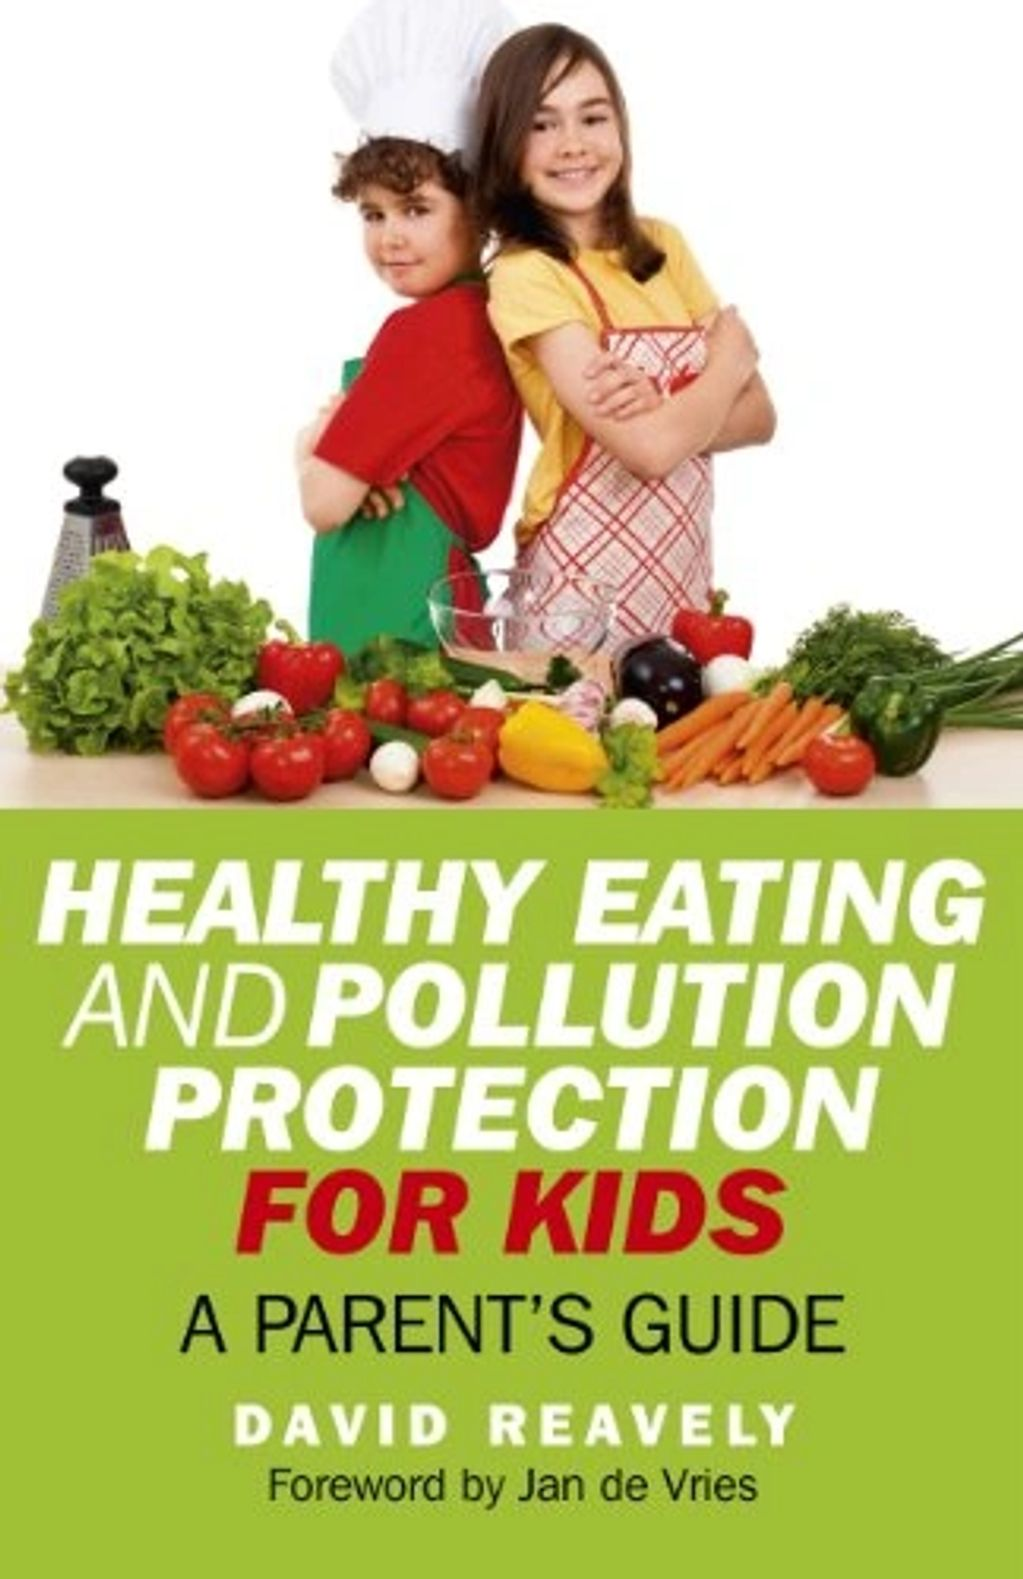 Healthy Eating and Pollution Protection for Kids by Dave Reavely